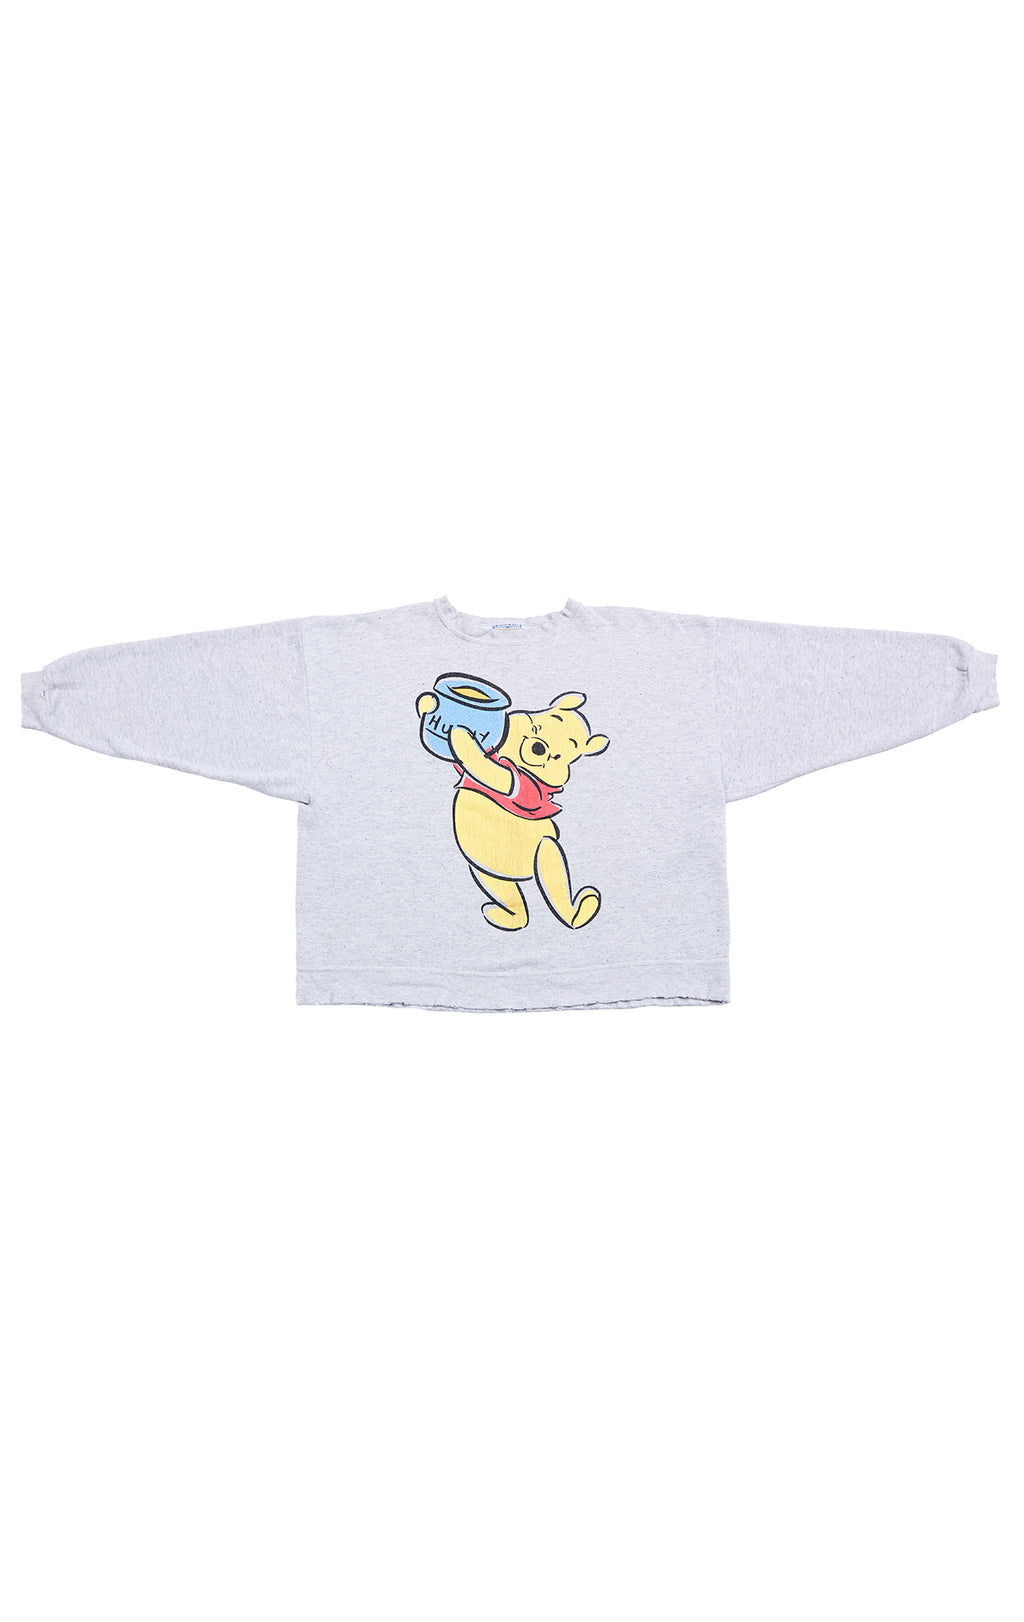 STONEWASHED CARTOON SWEATSHIRT FULL